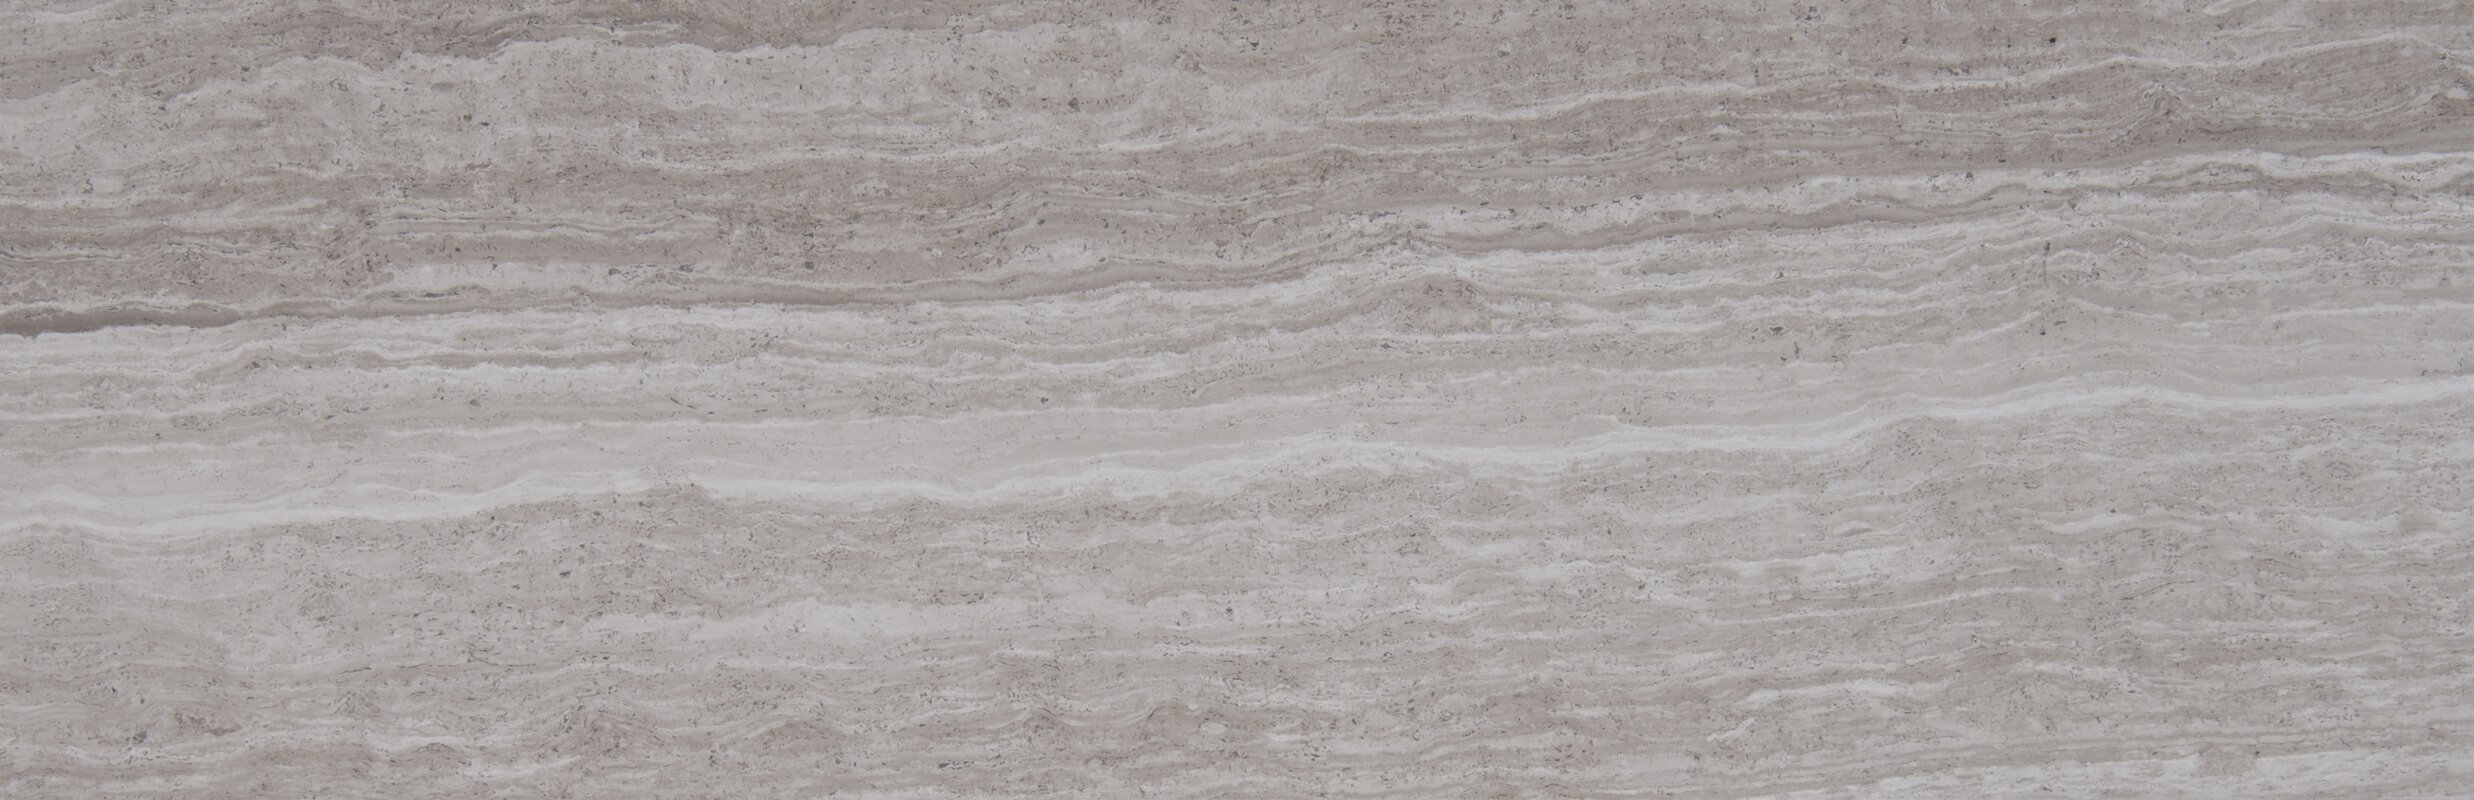 Msi 4 x 12 marble tile in white oak reviews wayfair 4 x 12 marble tile in dailygadgetfo Choice Image